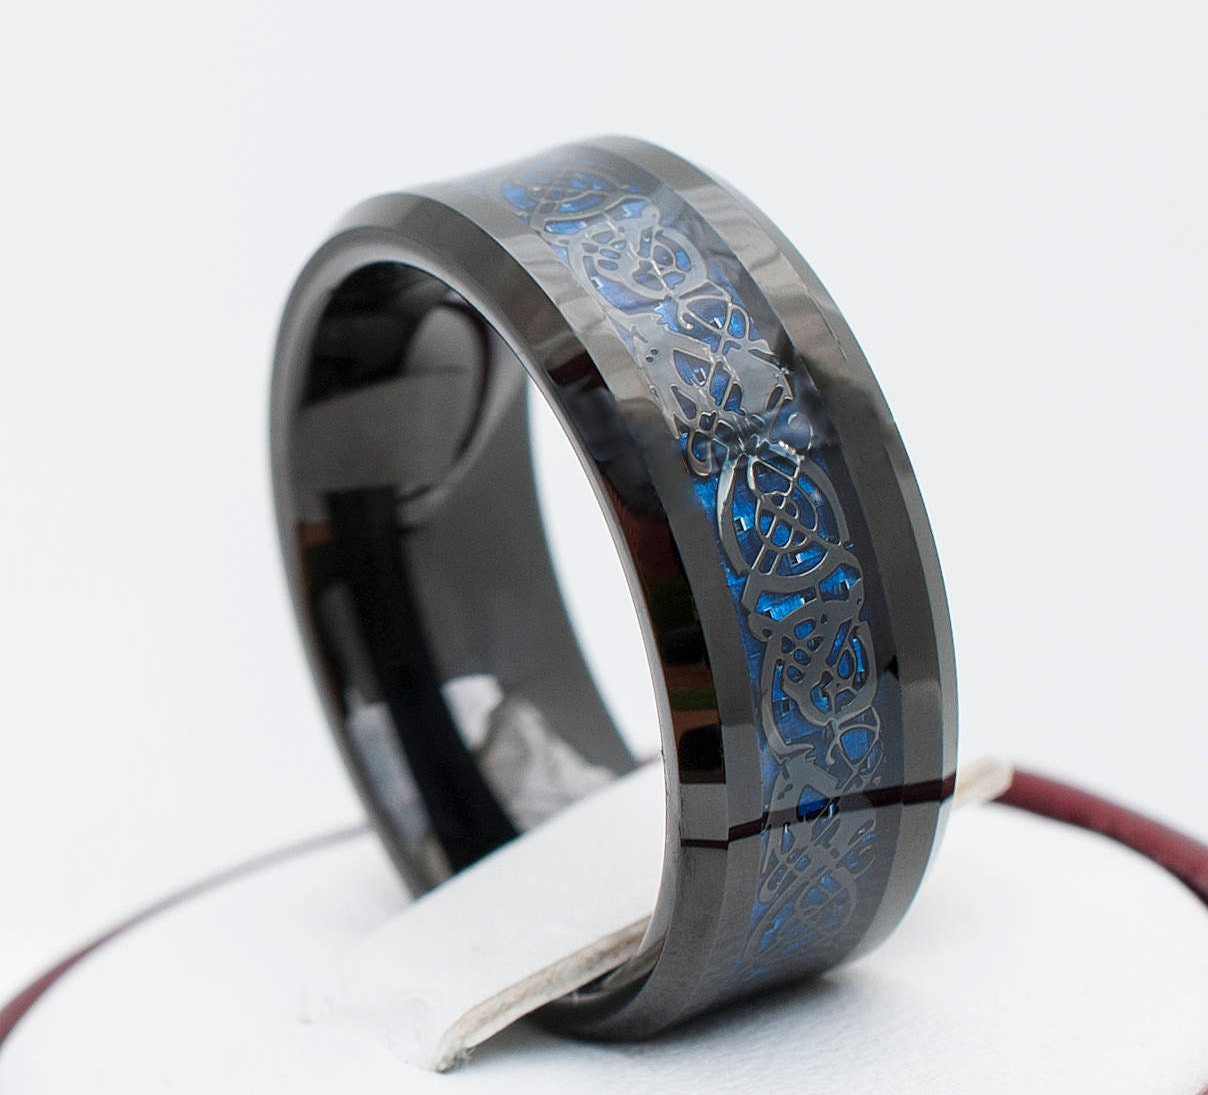 Black Tungsten Ring With Dark Blue Celtic Dragon Design Wedding Band Men Women 8mm Sizes 5 To 14 His Or Her Great Anniversary Gift: Bands Celtic Black Wedding Tungsten With At Websimilar.org